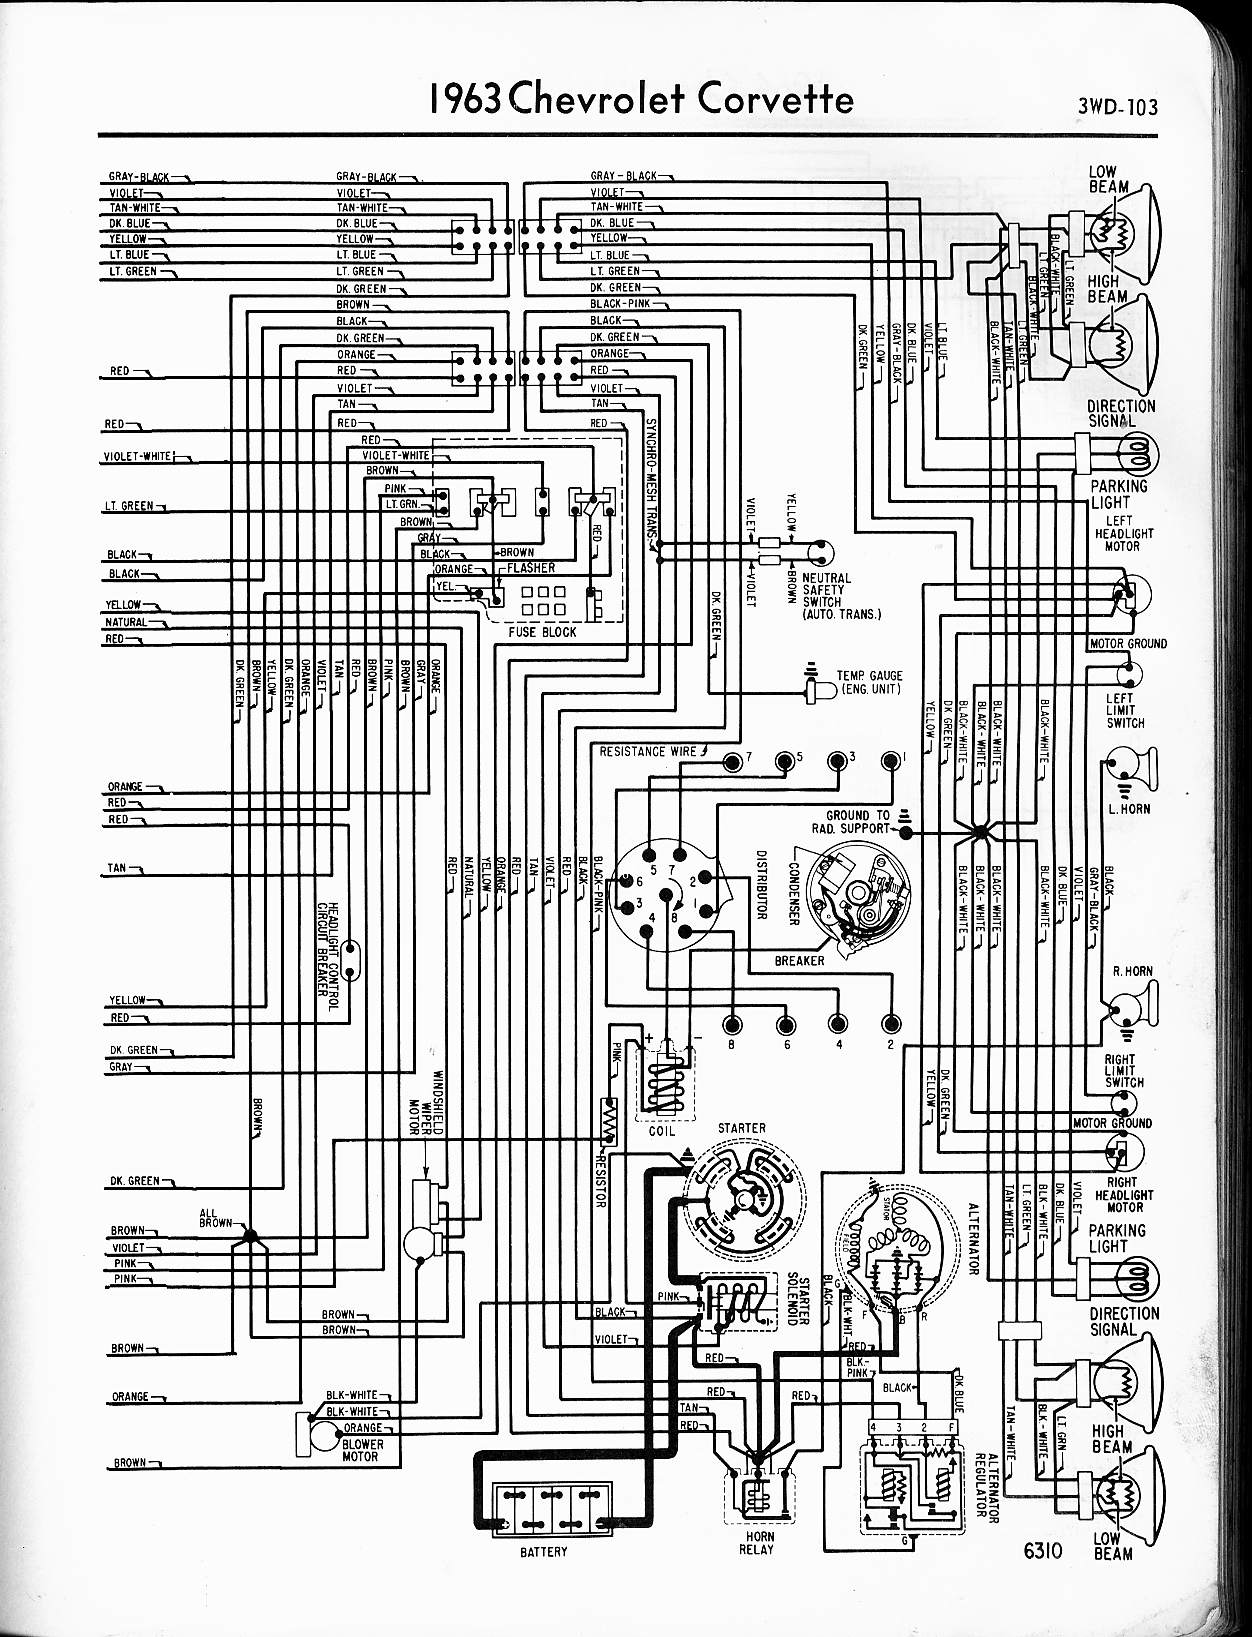 67 firebird wiring diagram basic electronics wiring diagram S10 Wiring Diagram 1971 firebird wiring diagram wiring diagram1971 corvette wiring diagram wiring diagram1971 firebird wiring diagram electronic schematics